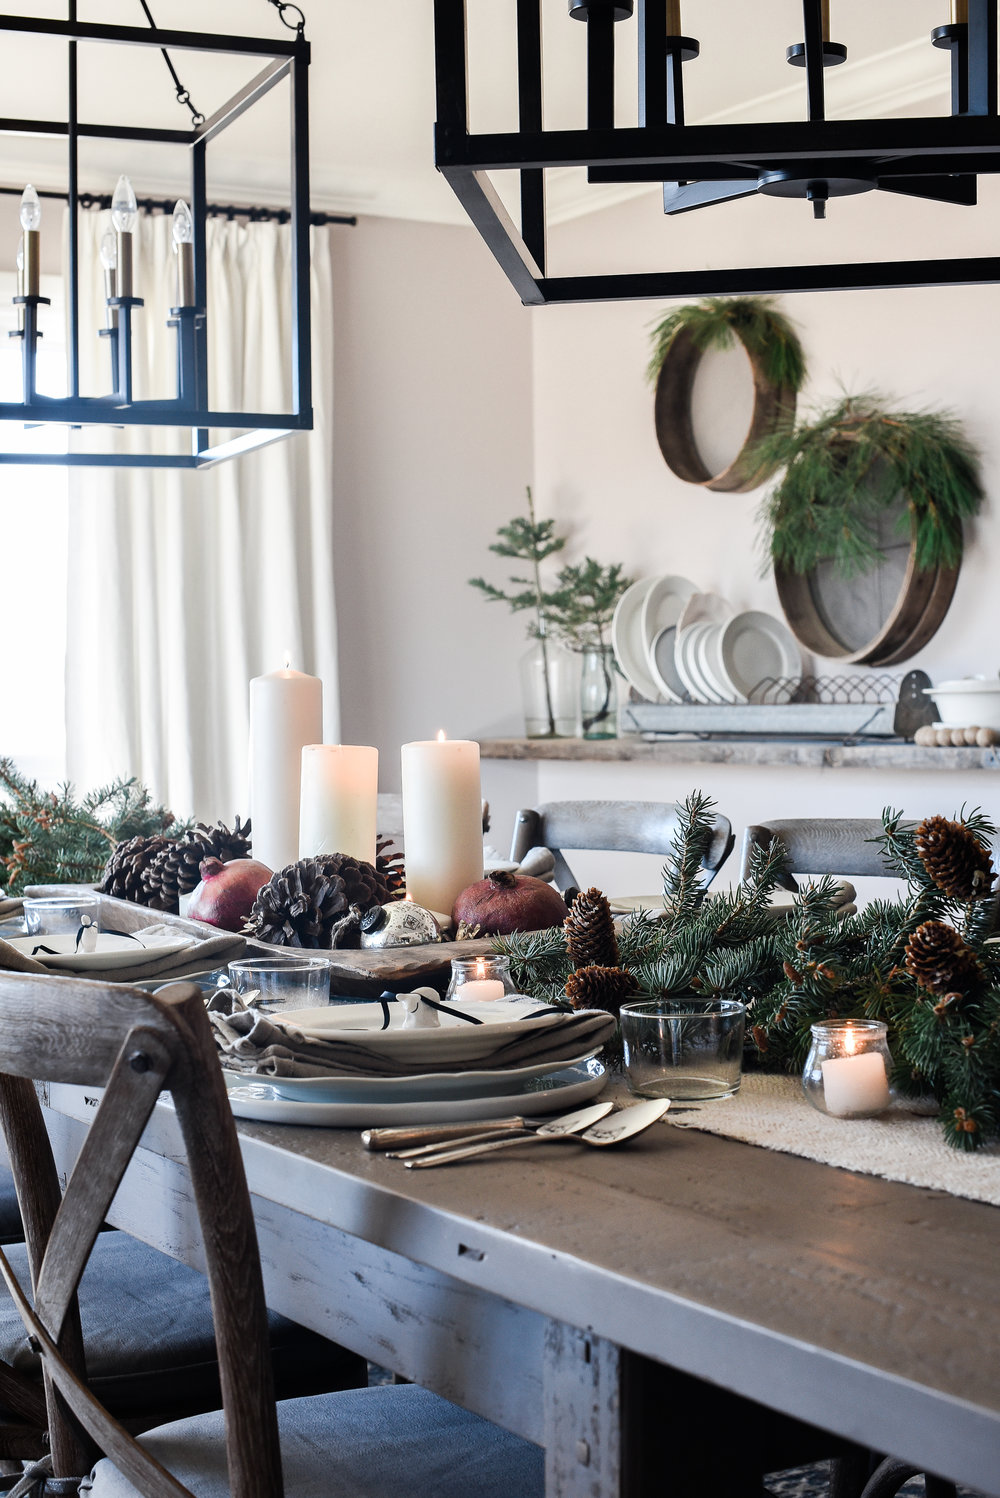 Farmhouse Christmas table ideas and decor | boxwoodavenue.com #christmasdecor #farmhousechristmas